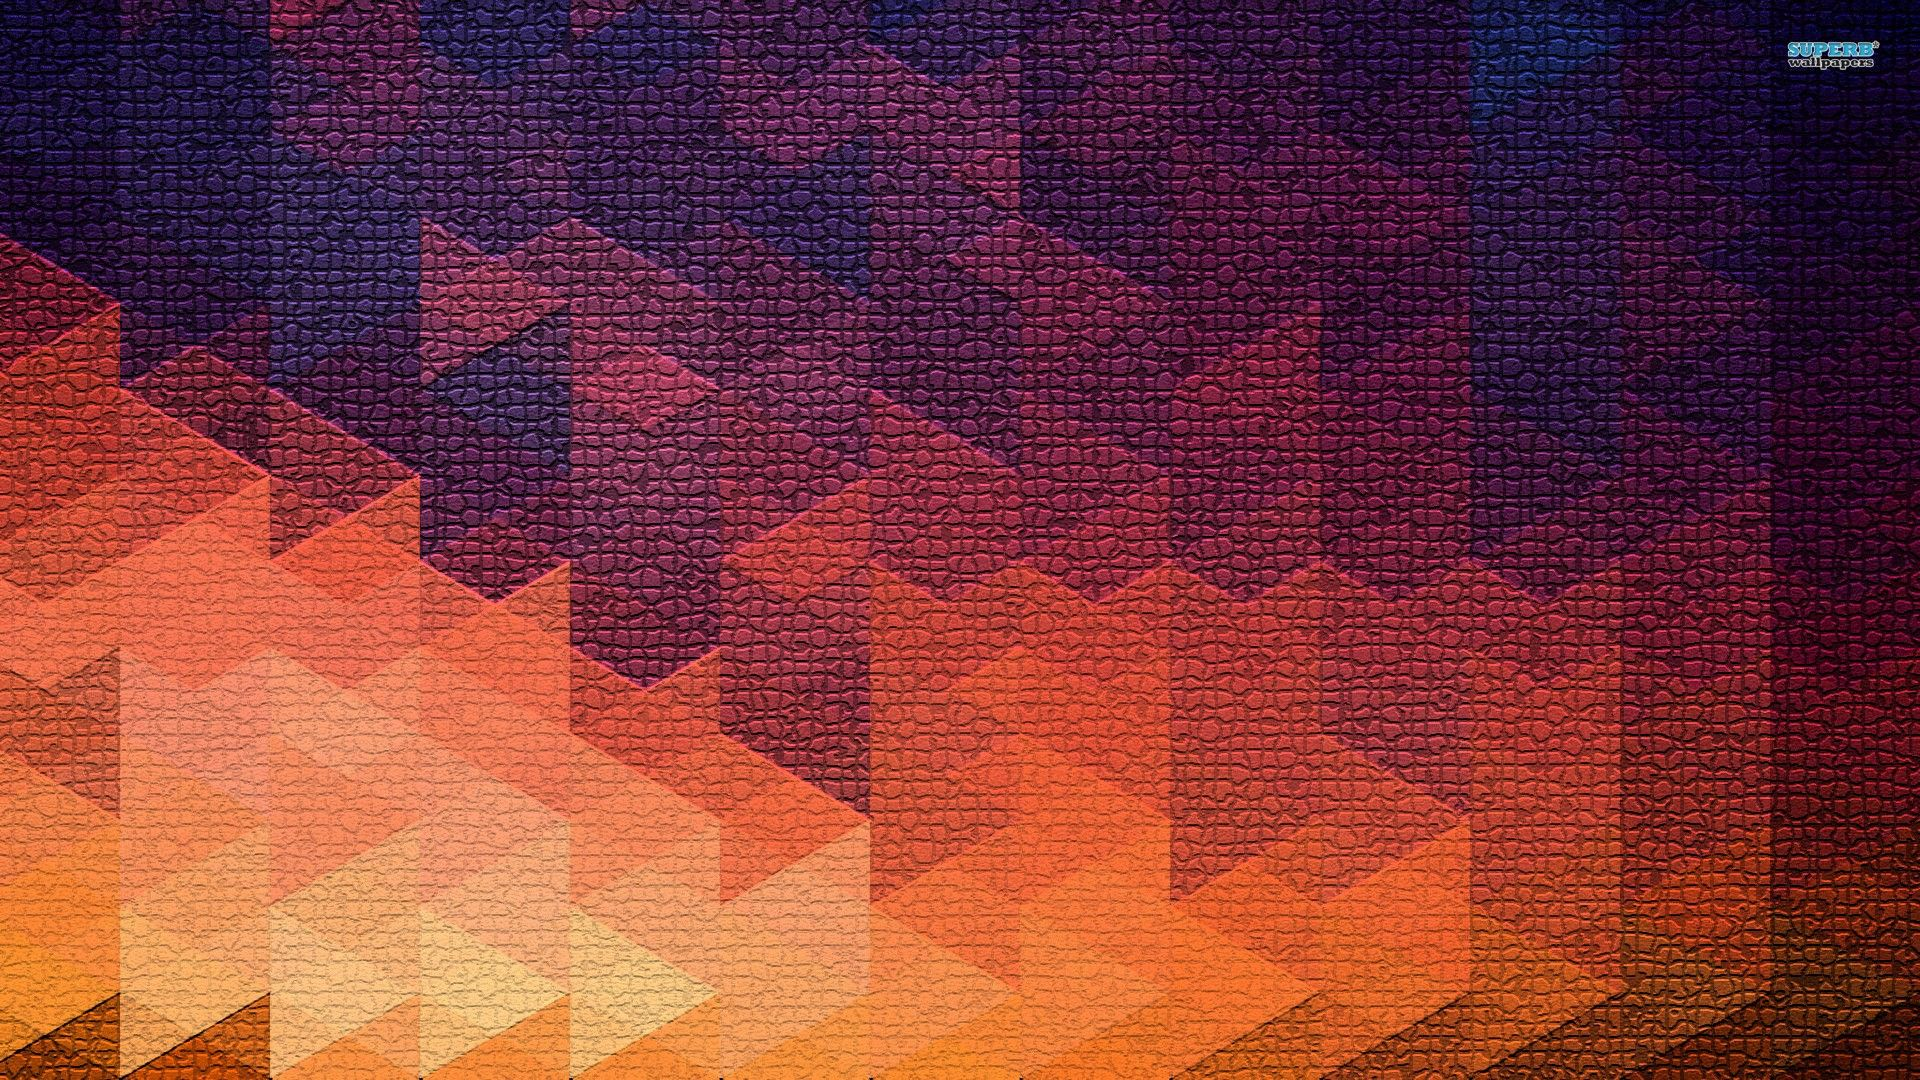 mosaic hd 1080p wallpapers download architecture space